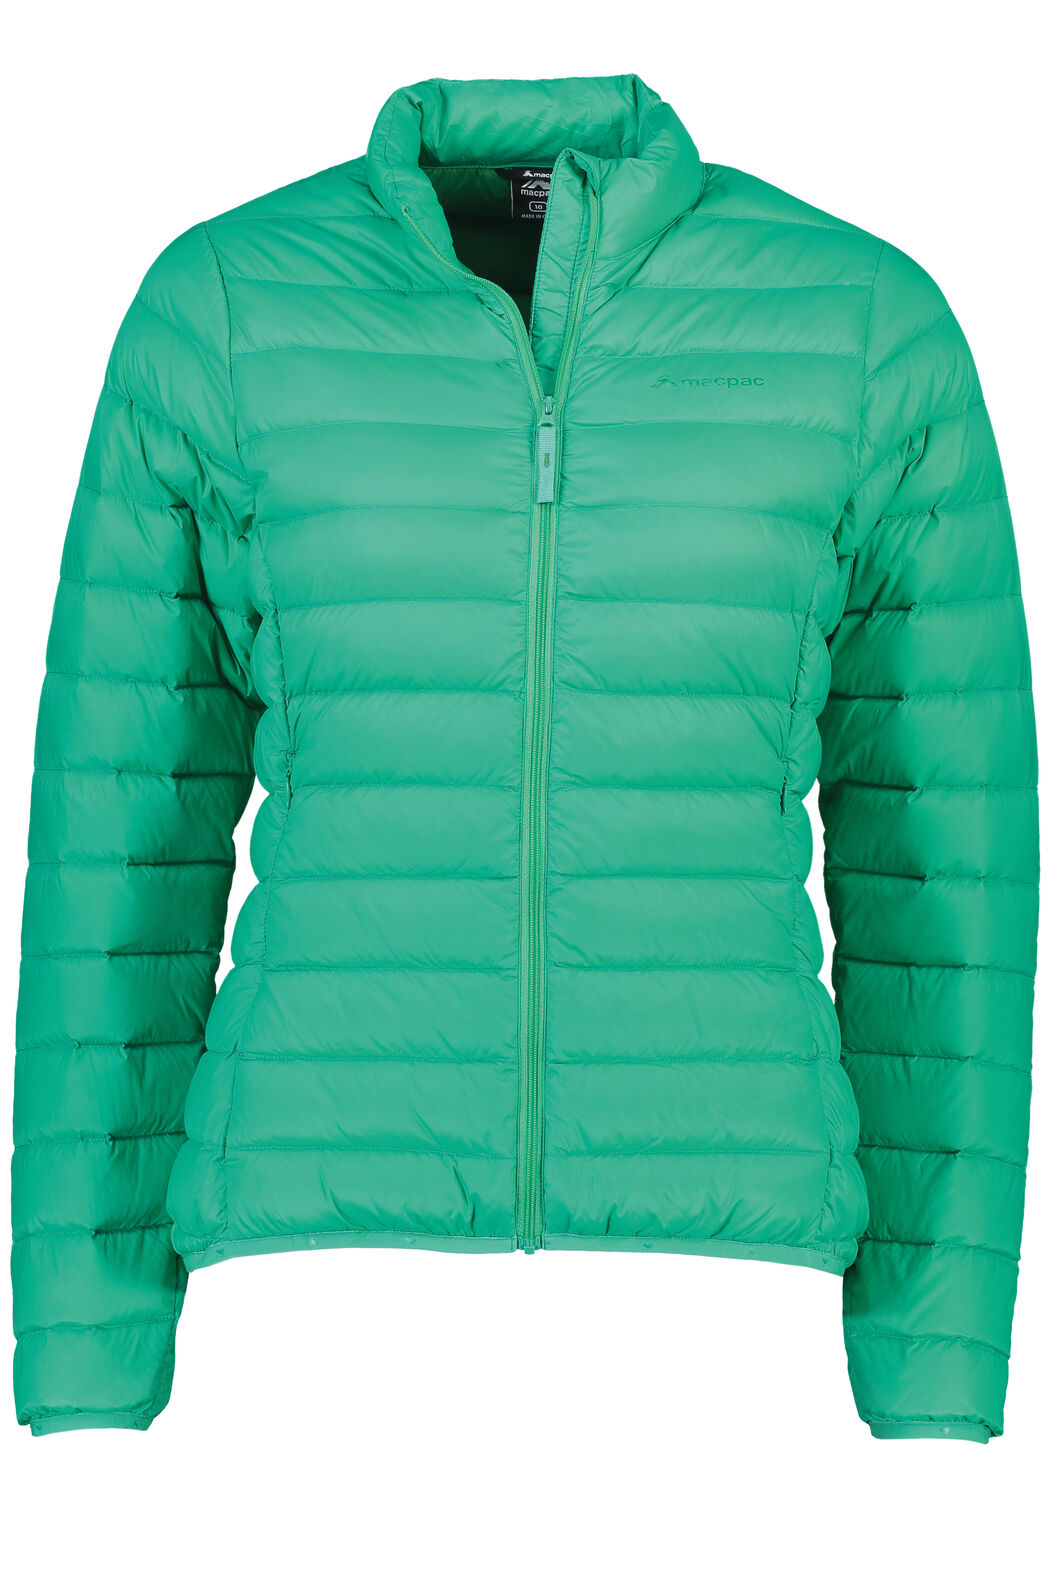 Uber Light Down Jacket - Women's, Deep Green, hi-res